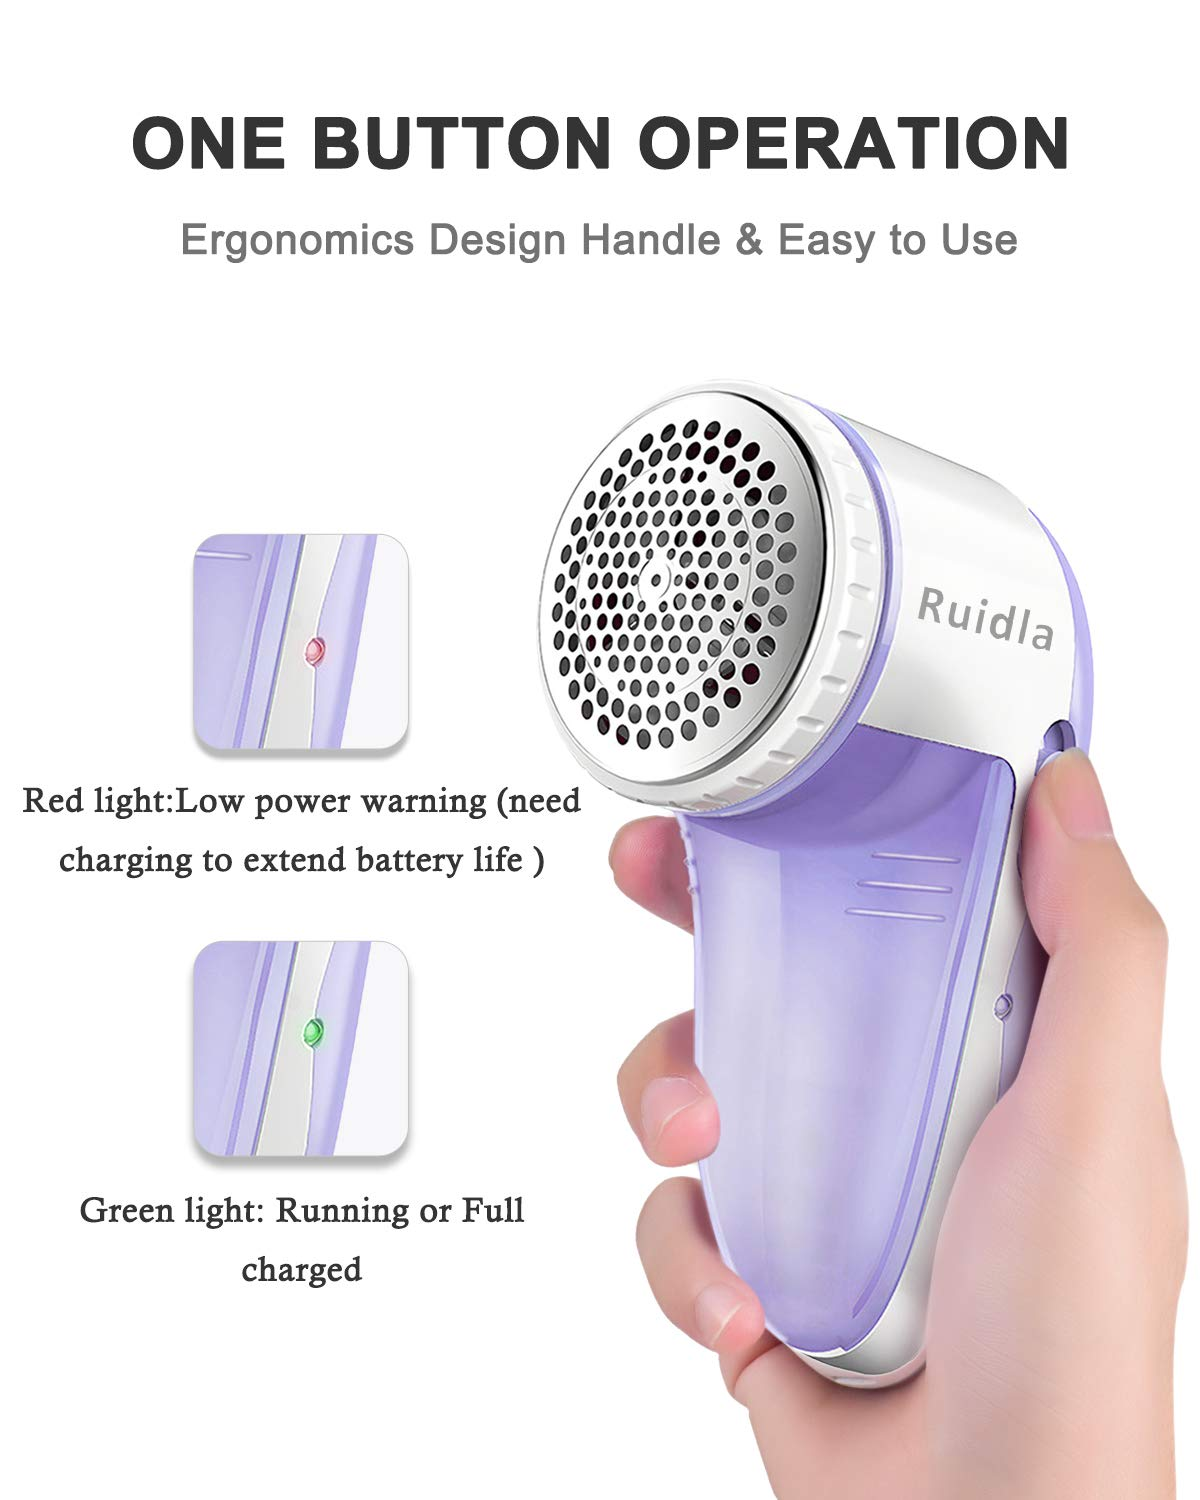 Ruidla Fabric Shaver Defuzzer Electric Lint Remover Rechargeable Sweater Shaver with Replaceable